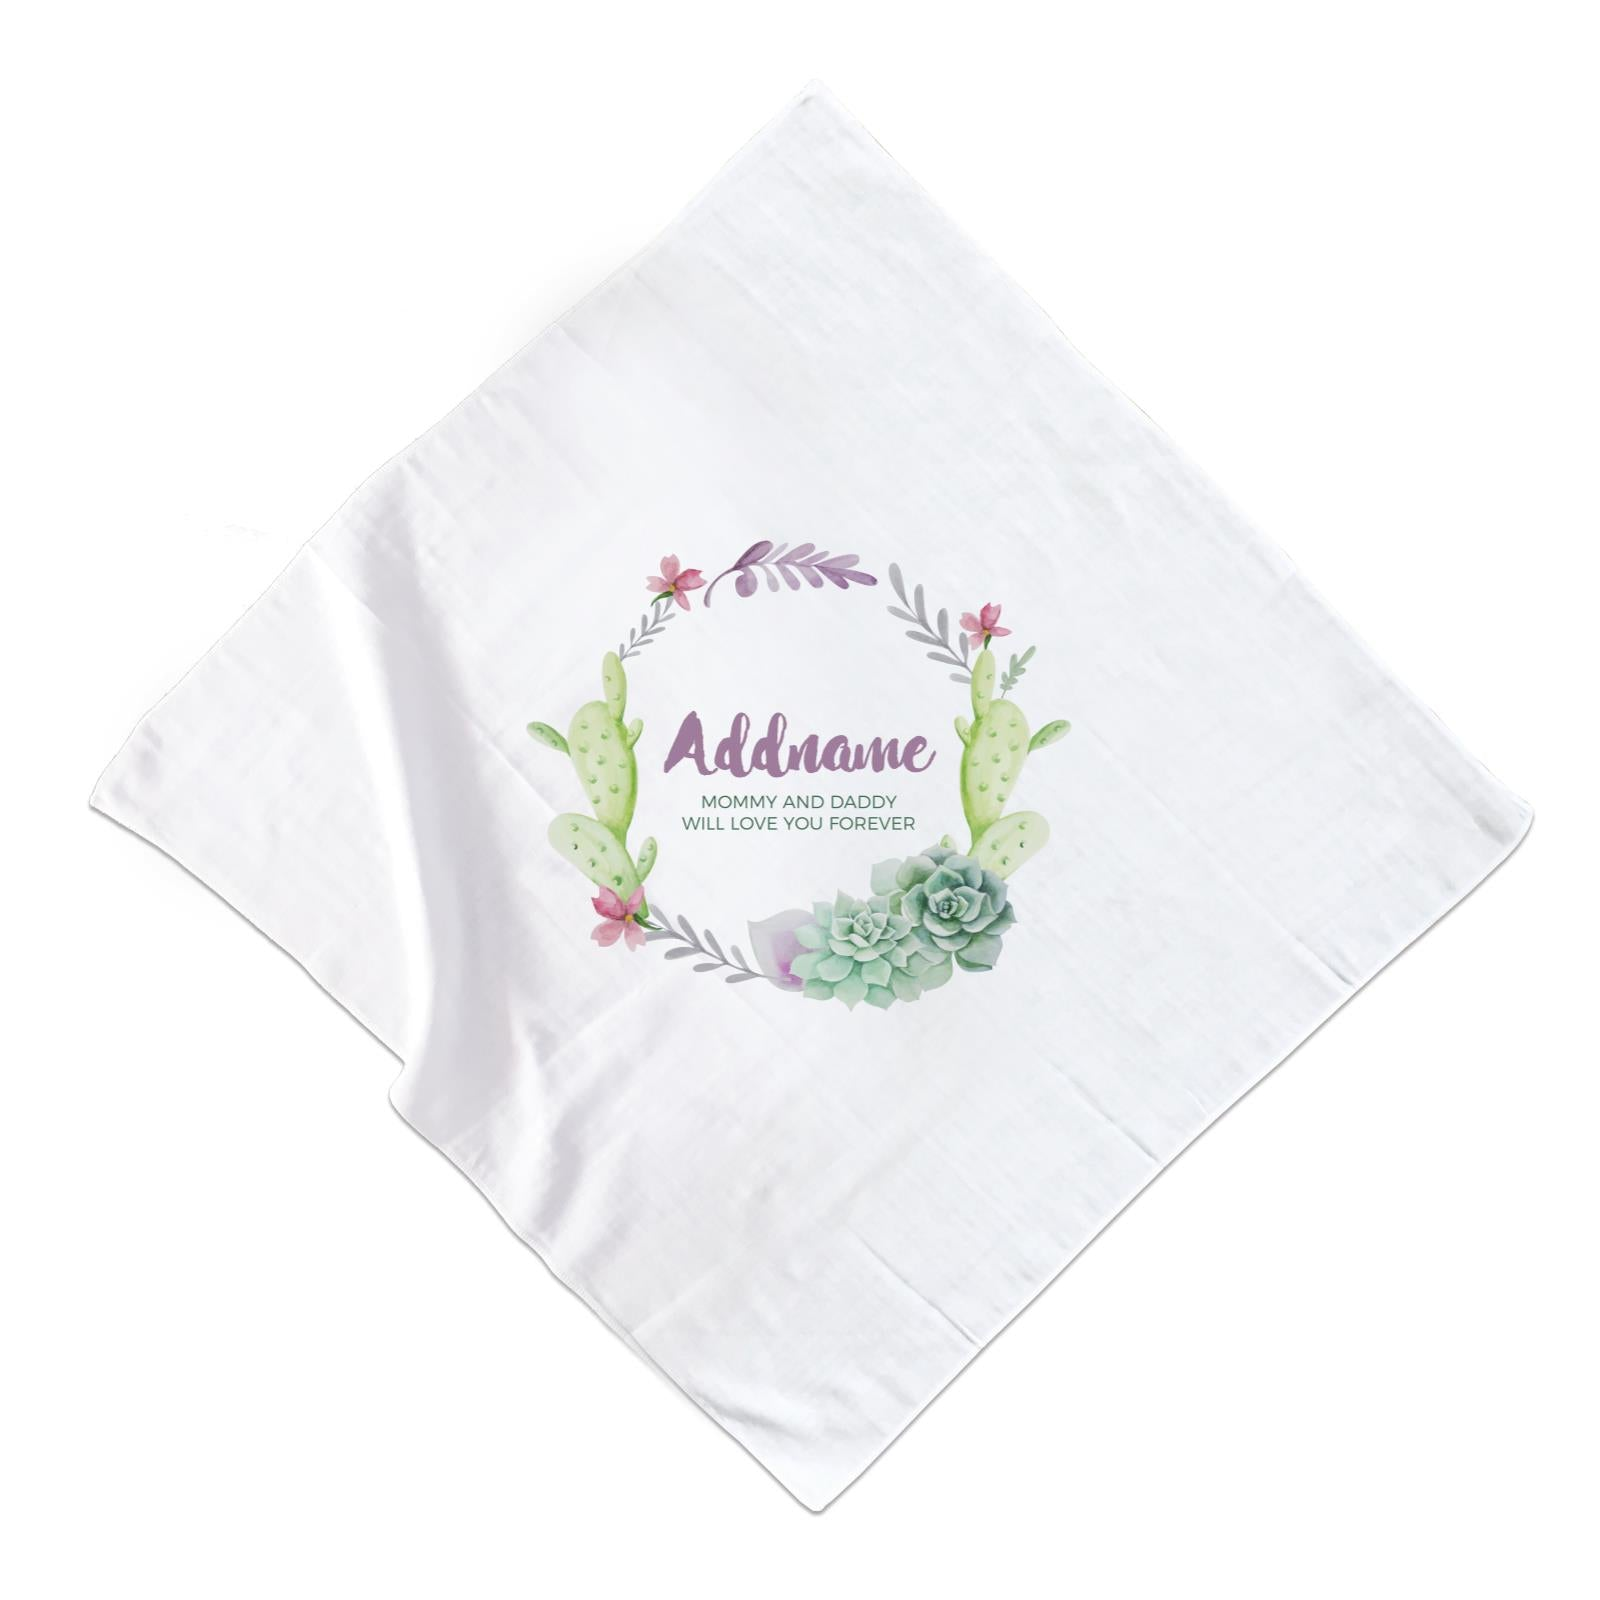 Succulent Wreath Personalizable with Name and Text Muslin Square